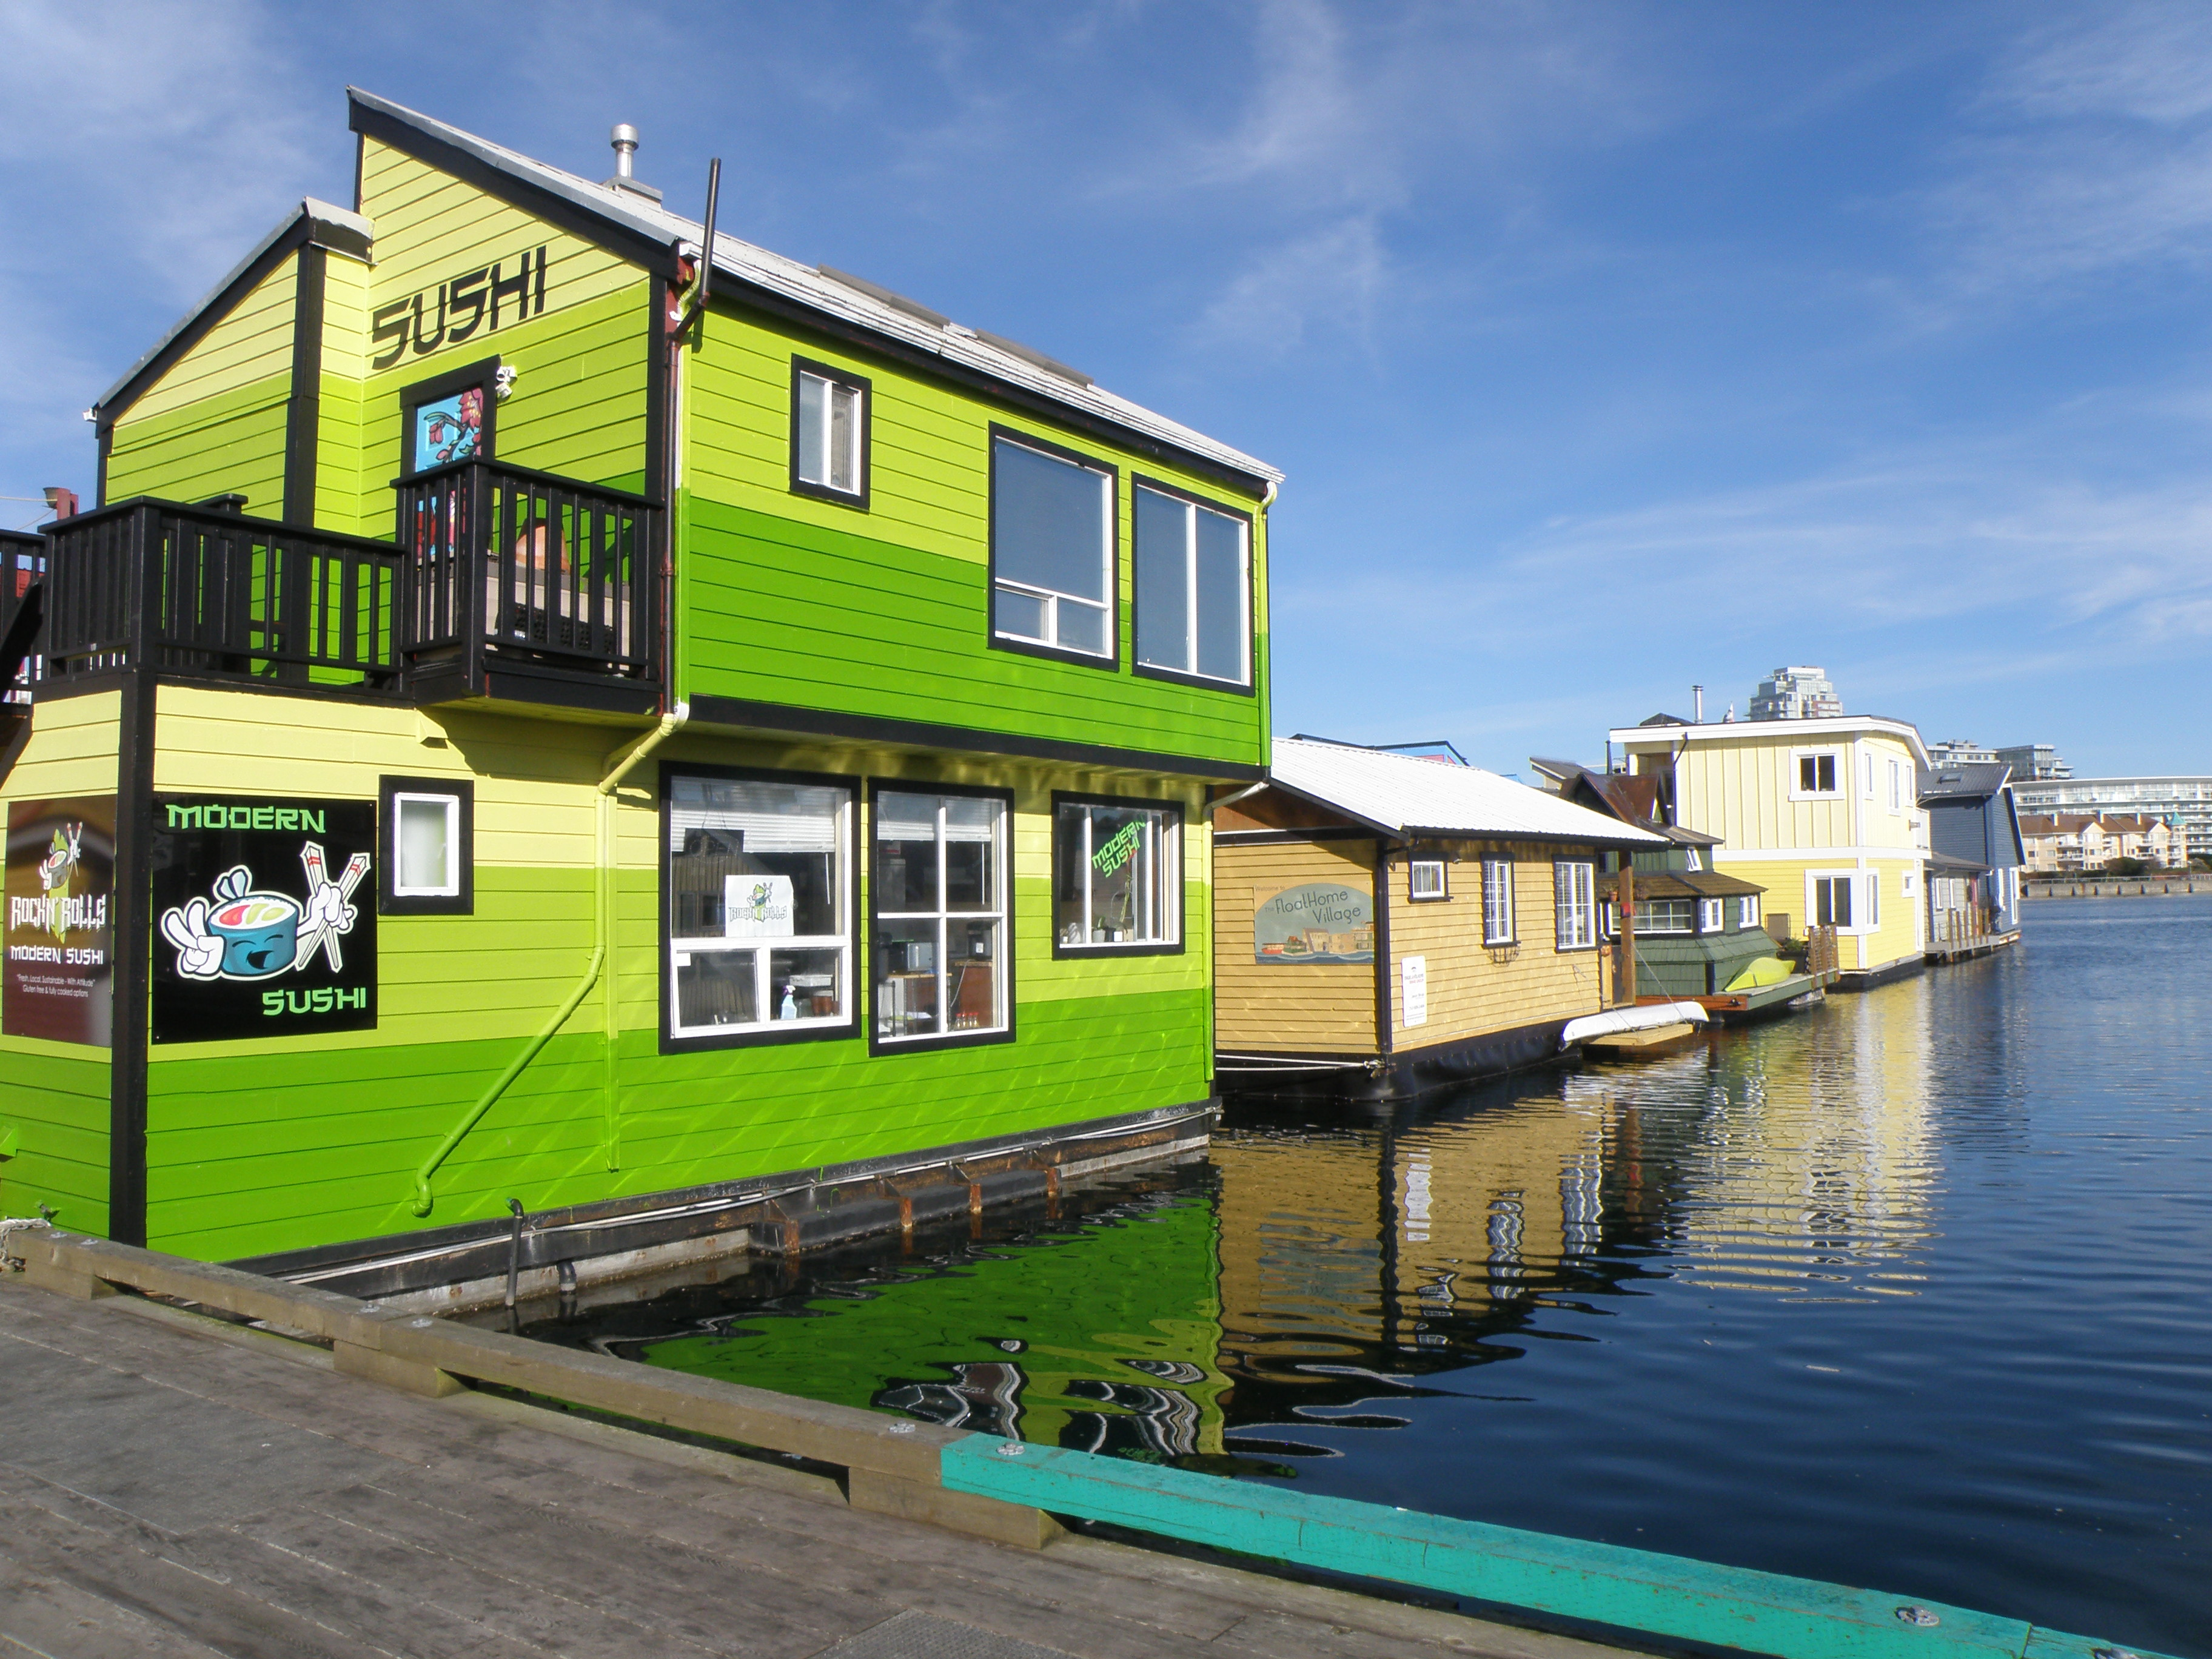 A lime green floating house boat.